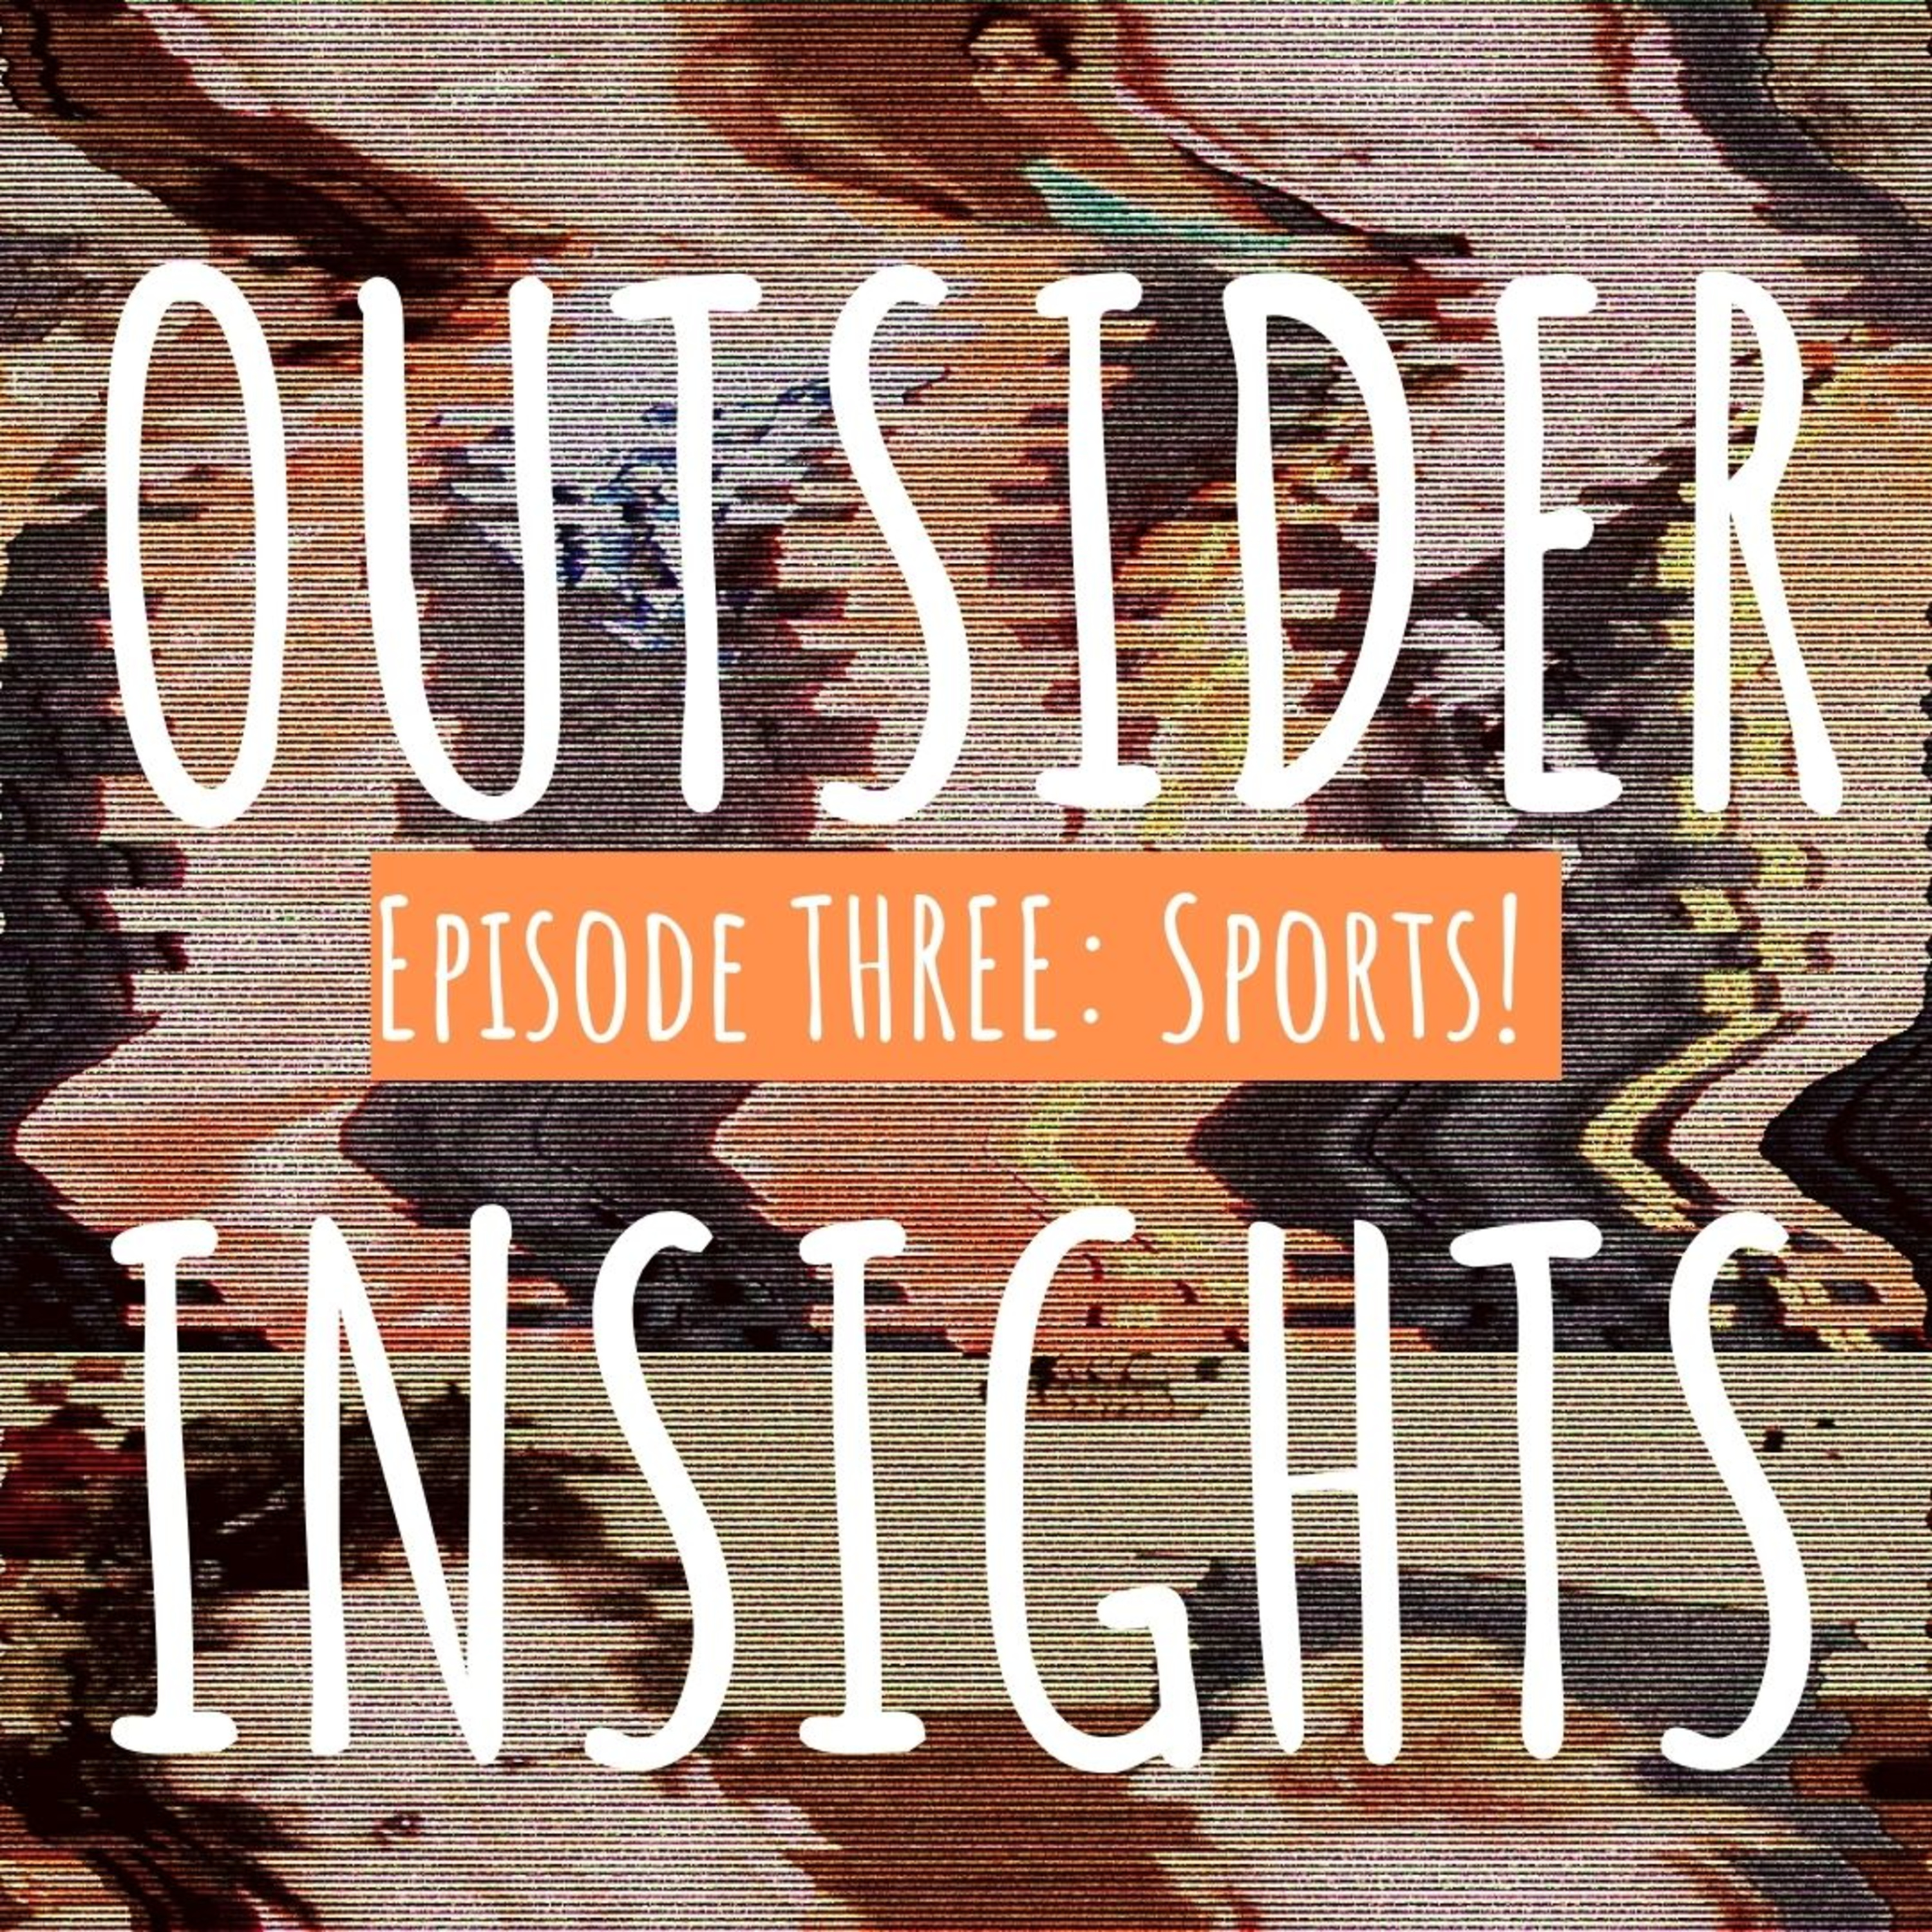 Outsider Insights, Episode #3: SPORTS!